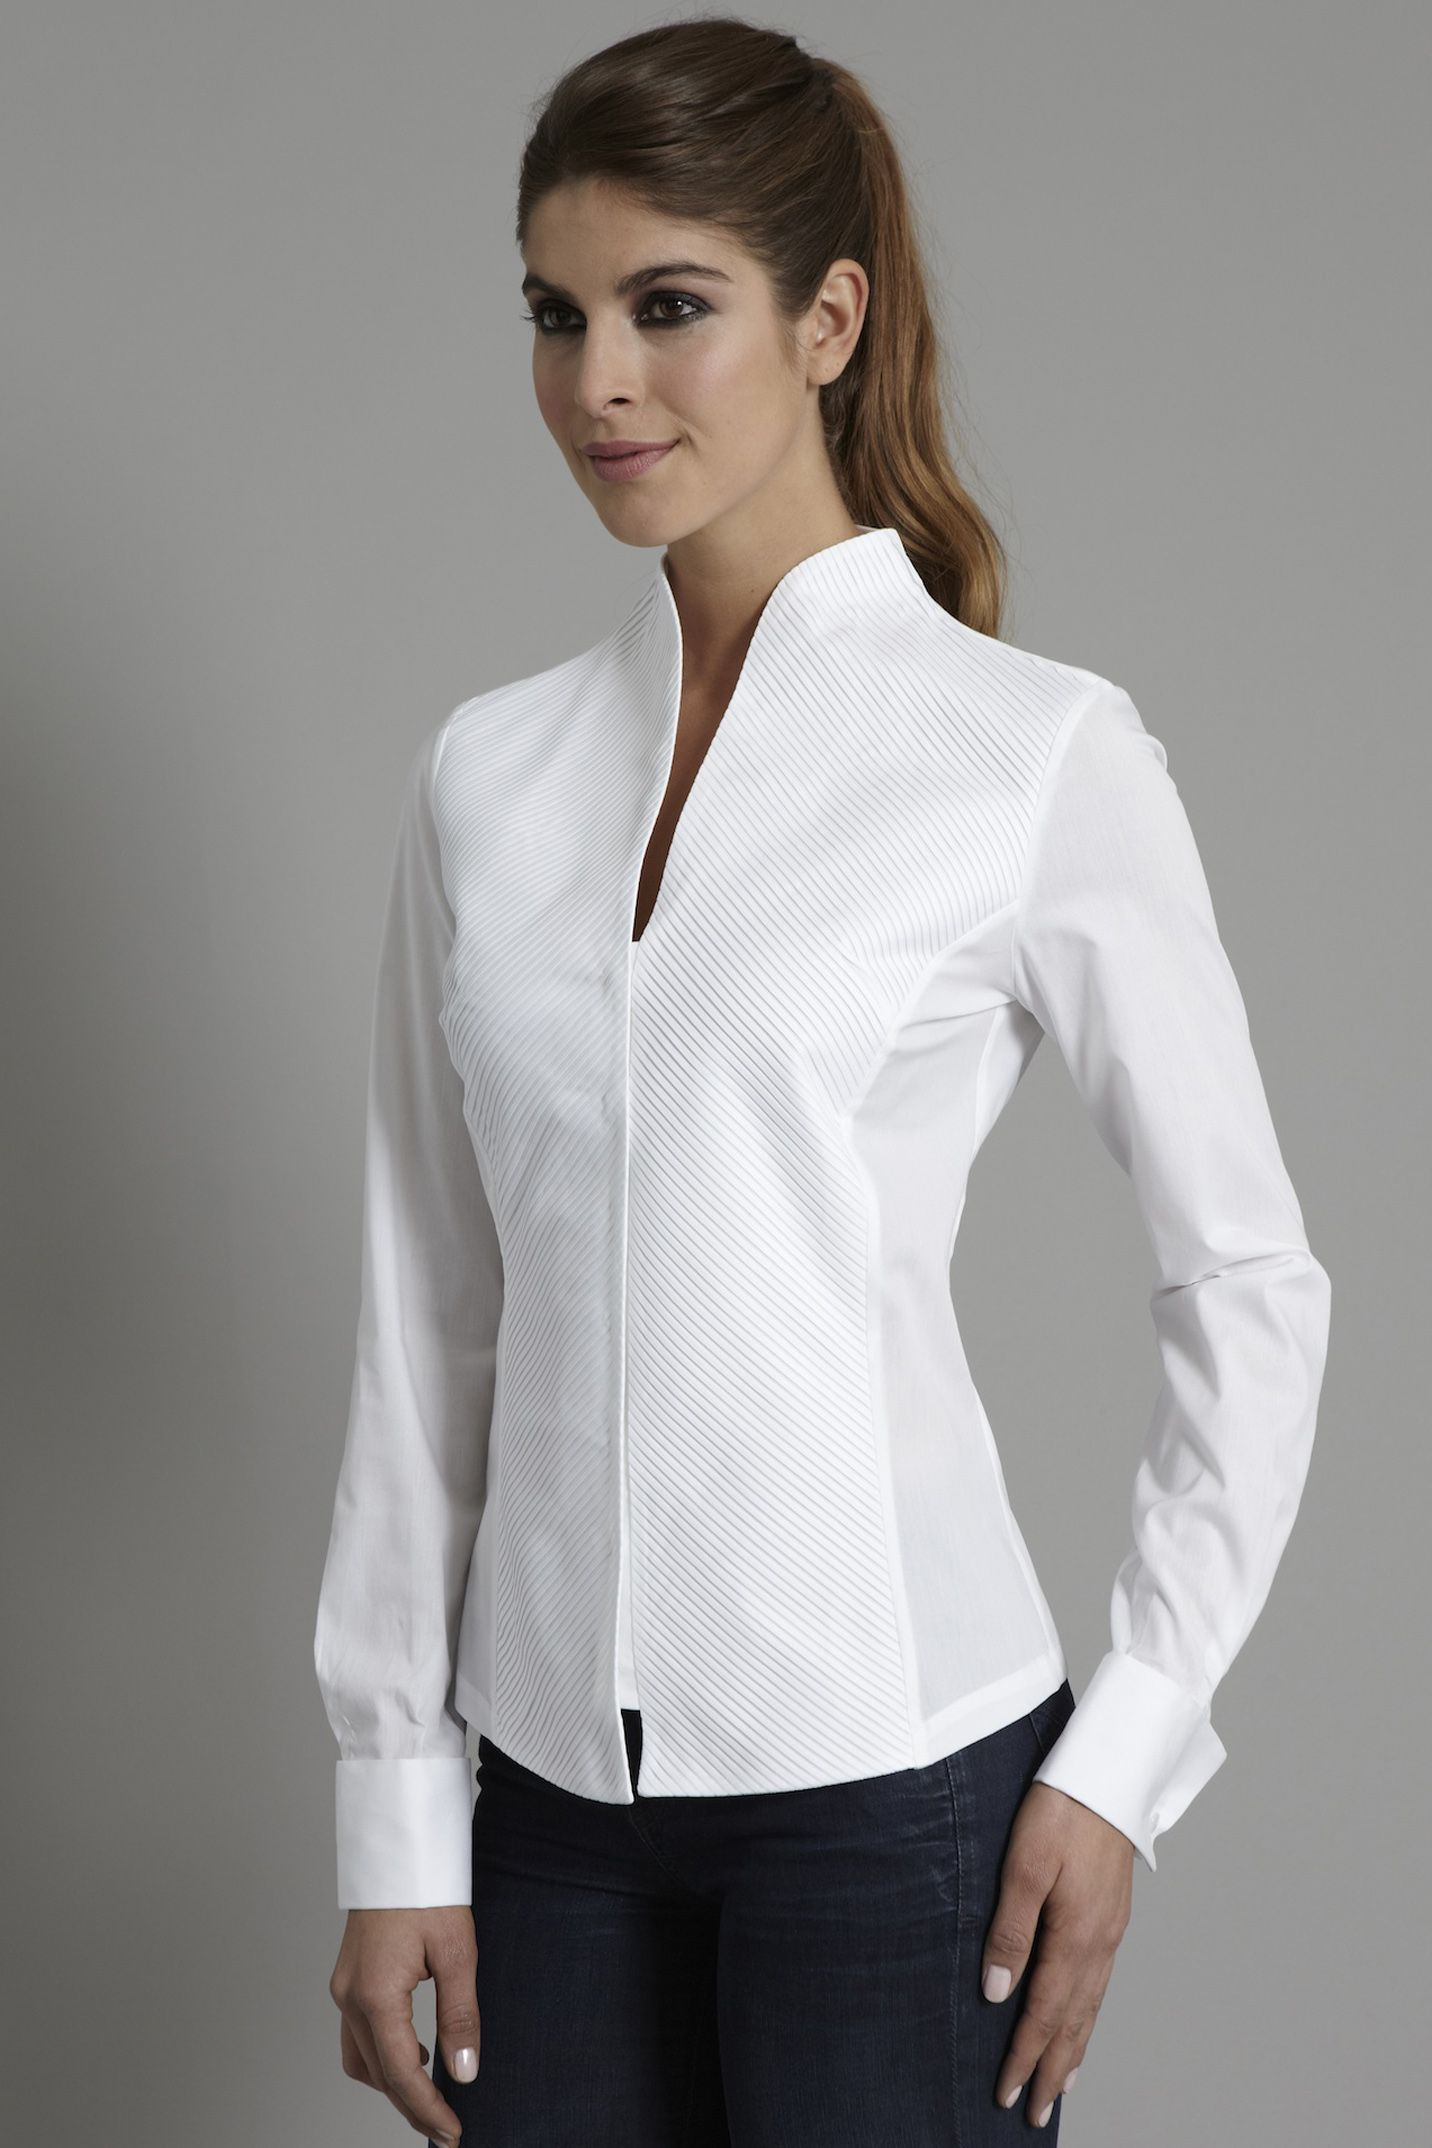 Penelope white shirt collar shirts contemporary and modern for White shirt for tuxedo